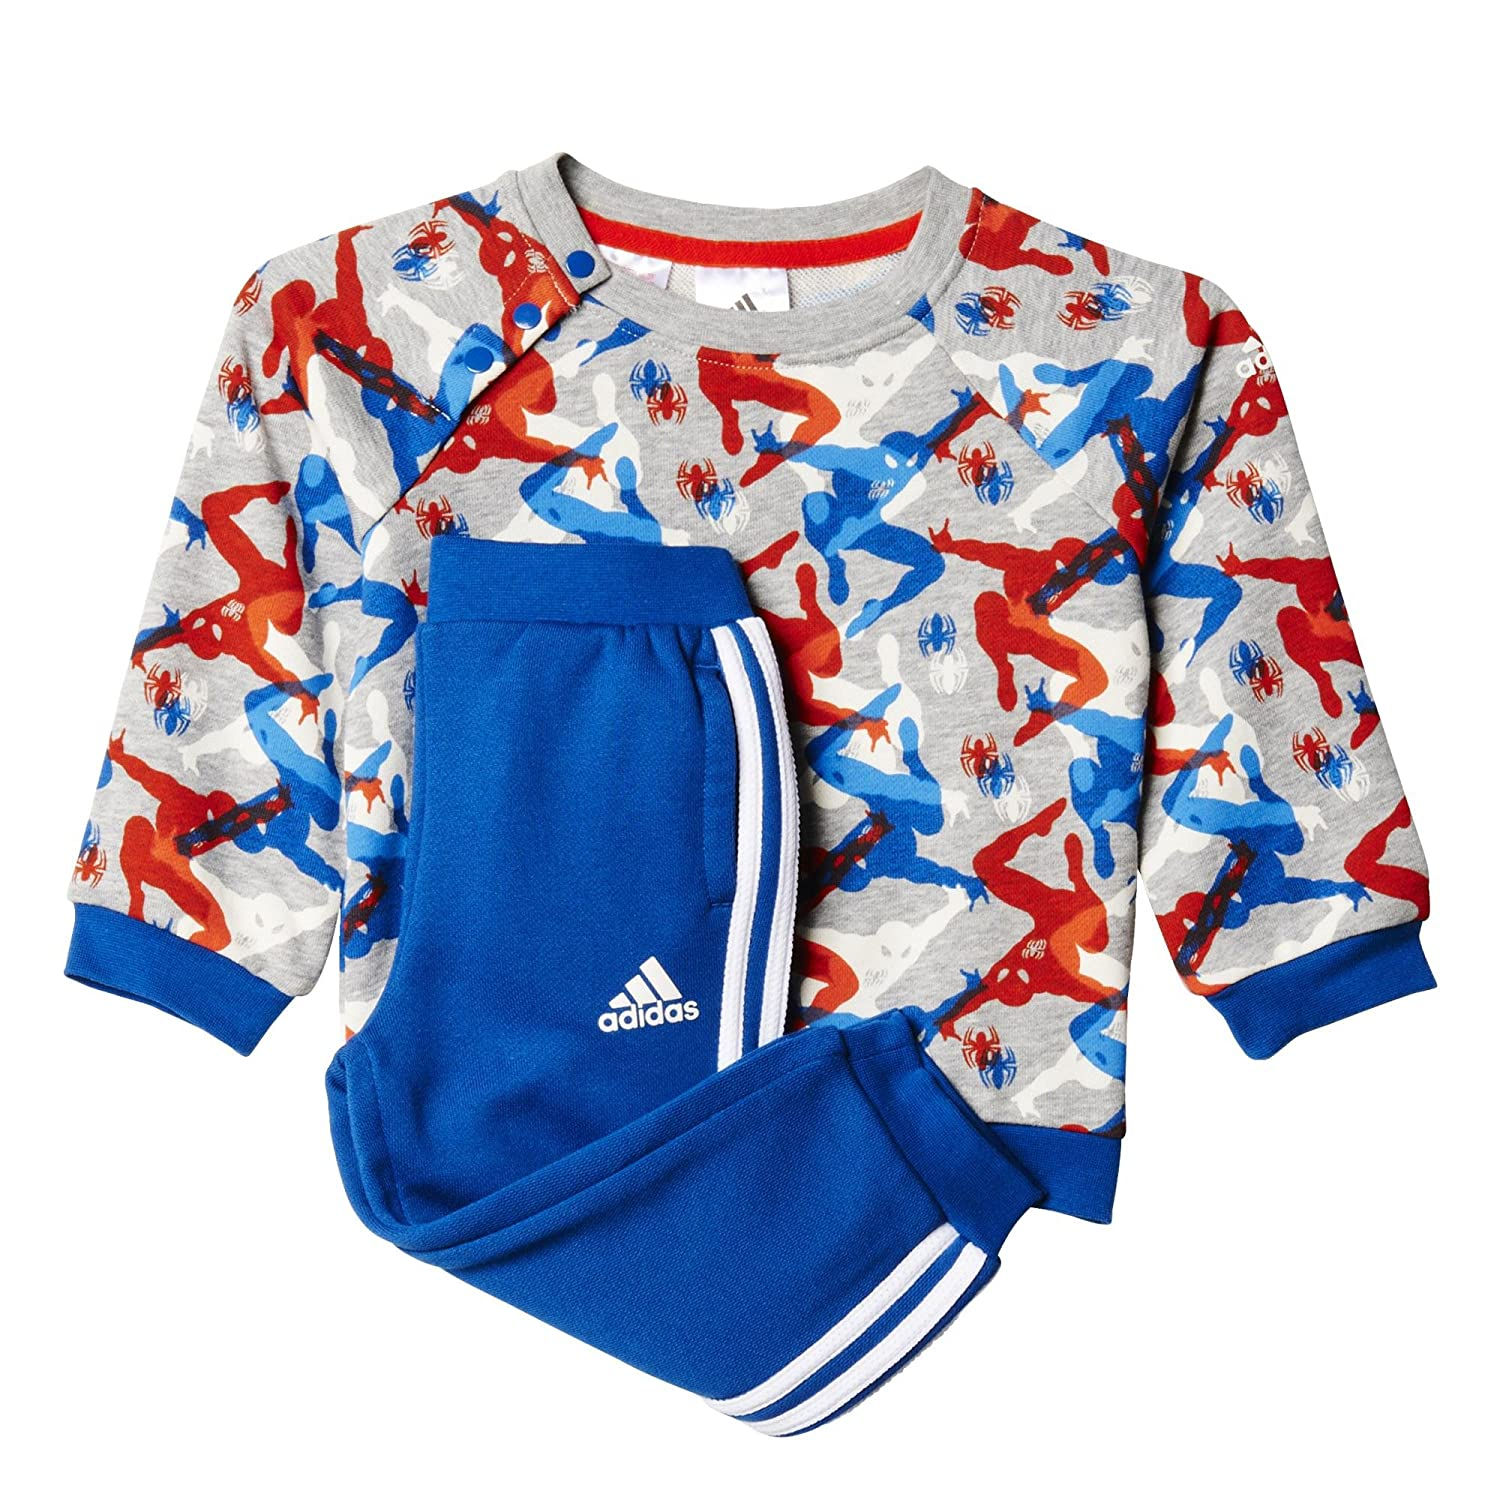 adidas Kids' to DY SM CSS Kit Size 74 4055344427538